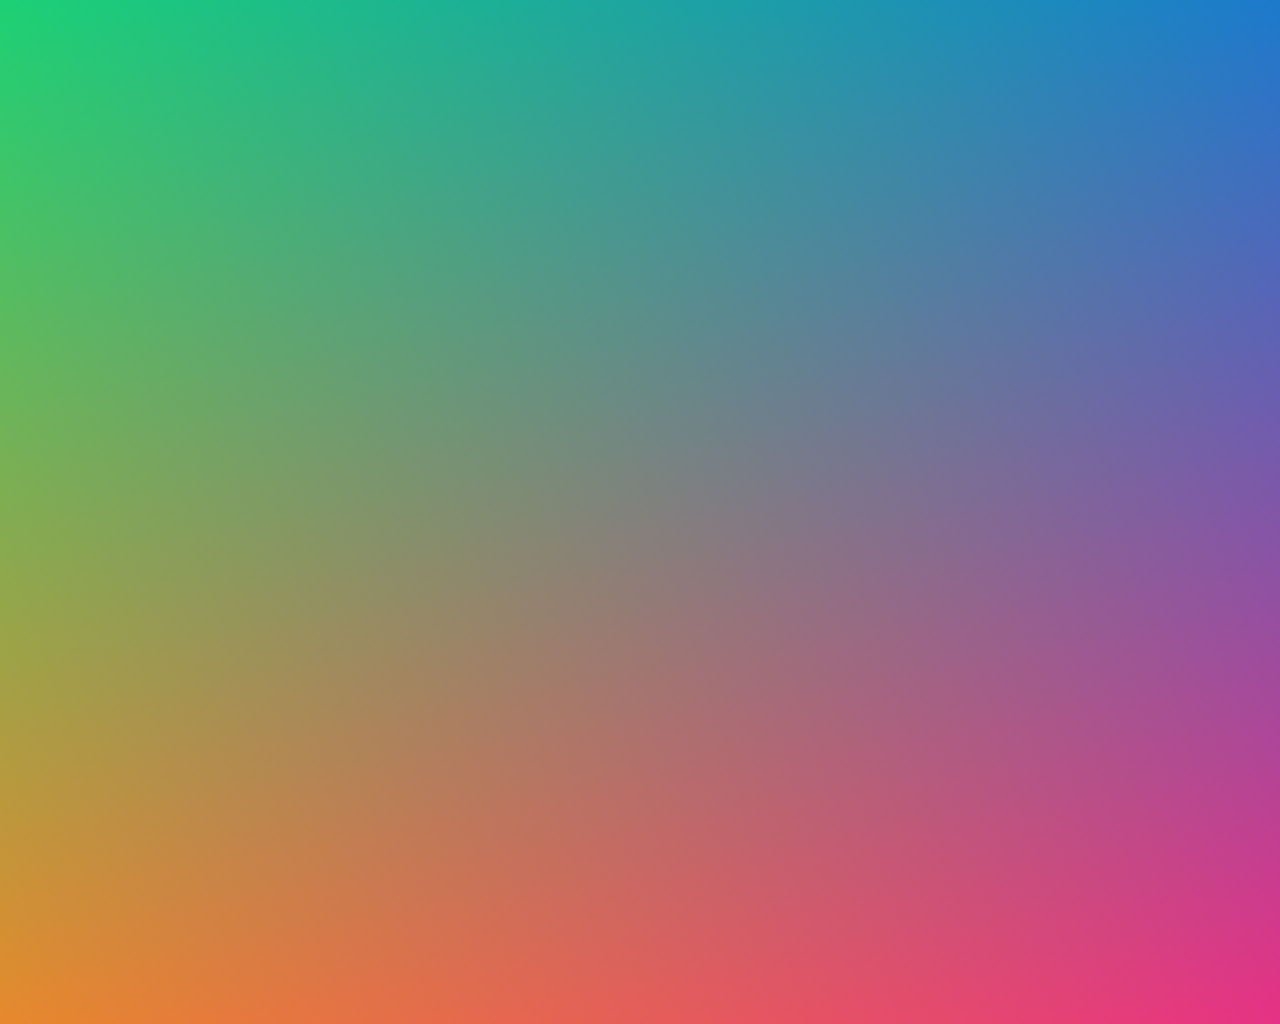 Best Christmas Wallpaper For Iphone Sl86 Color Rainbow Blur Gradation Wallpaper